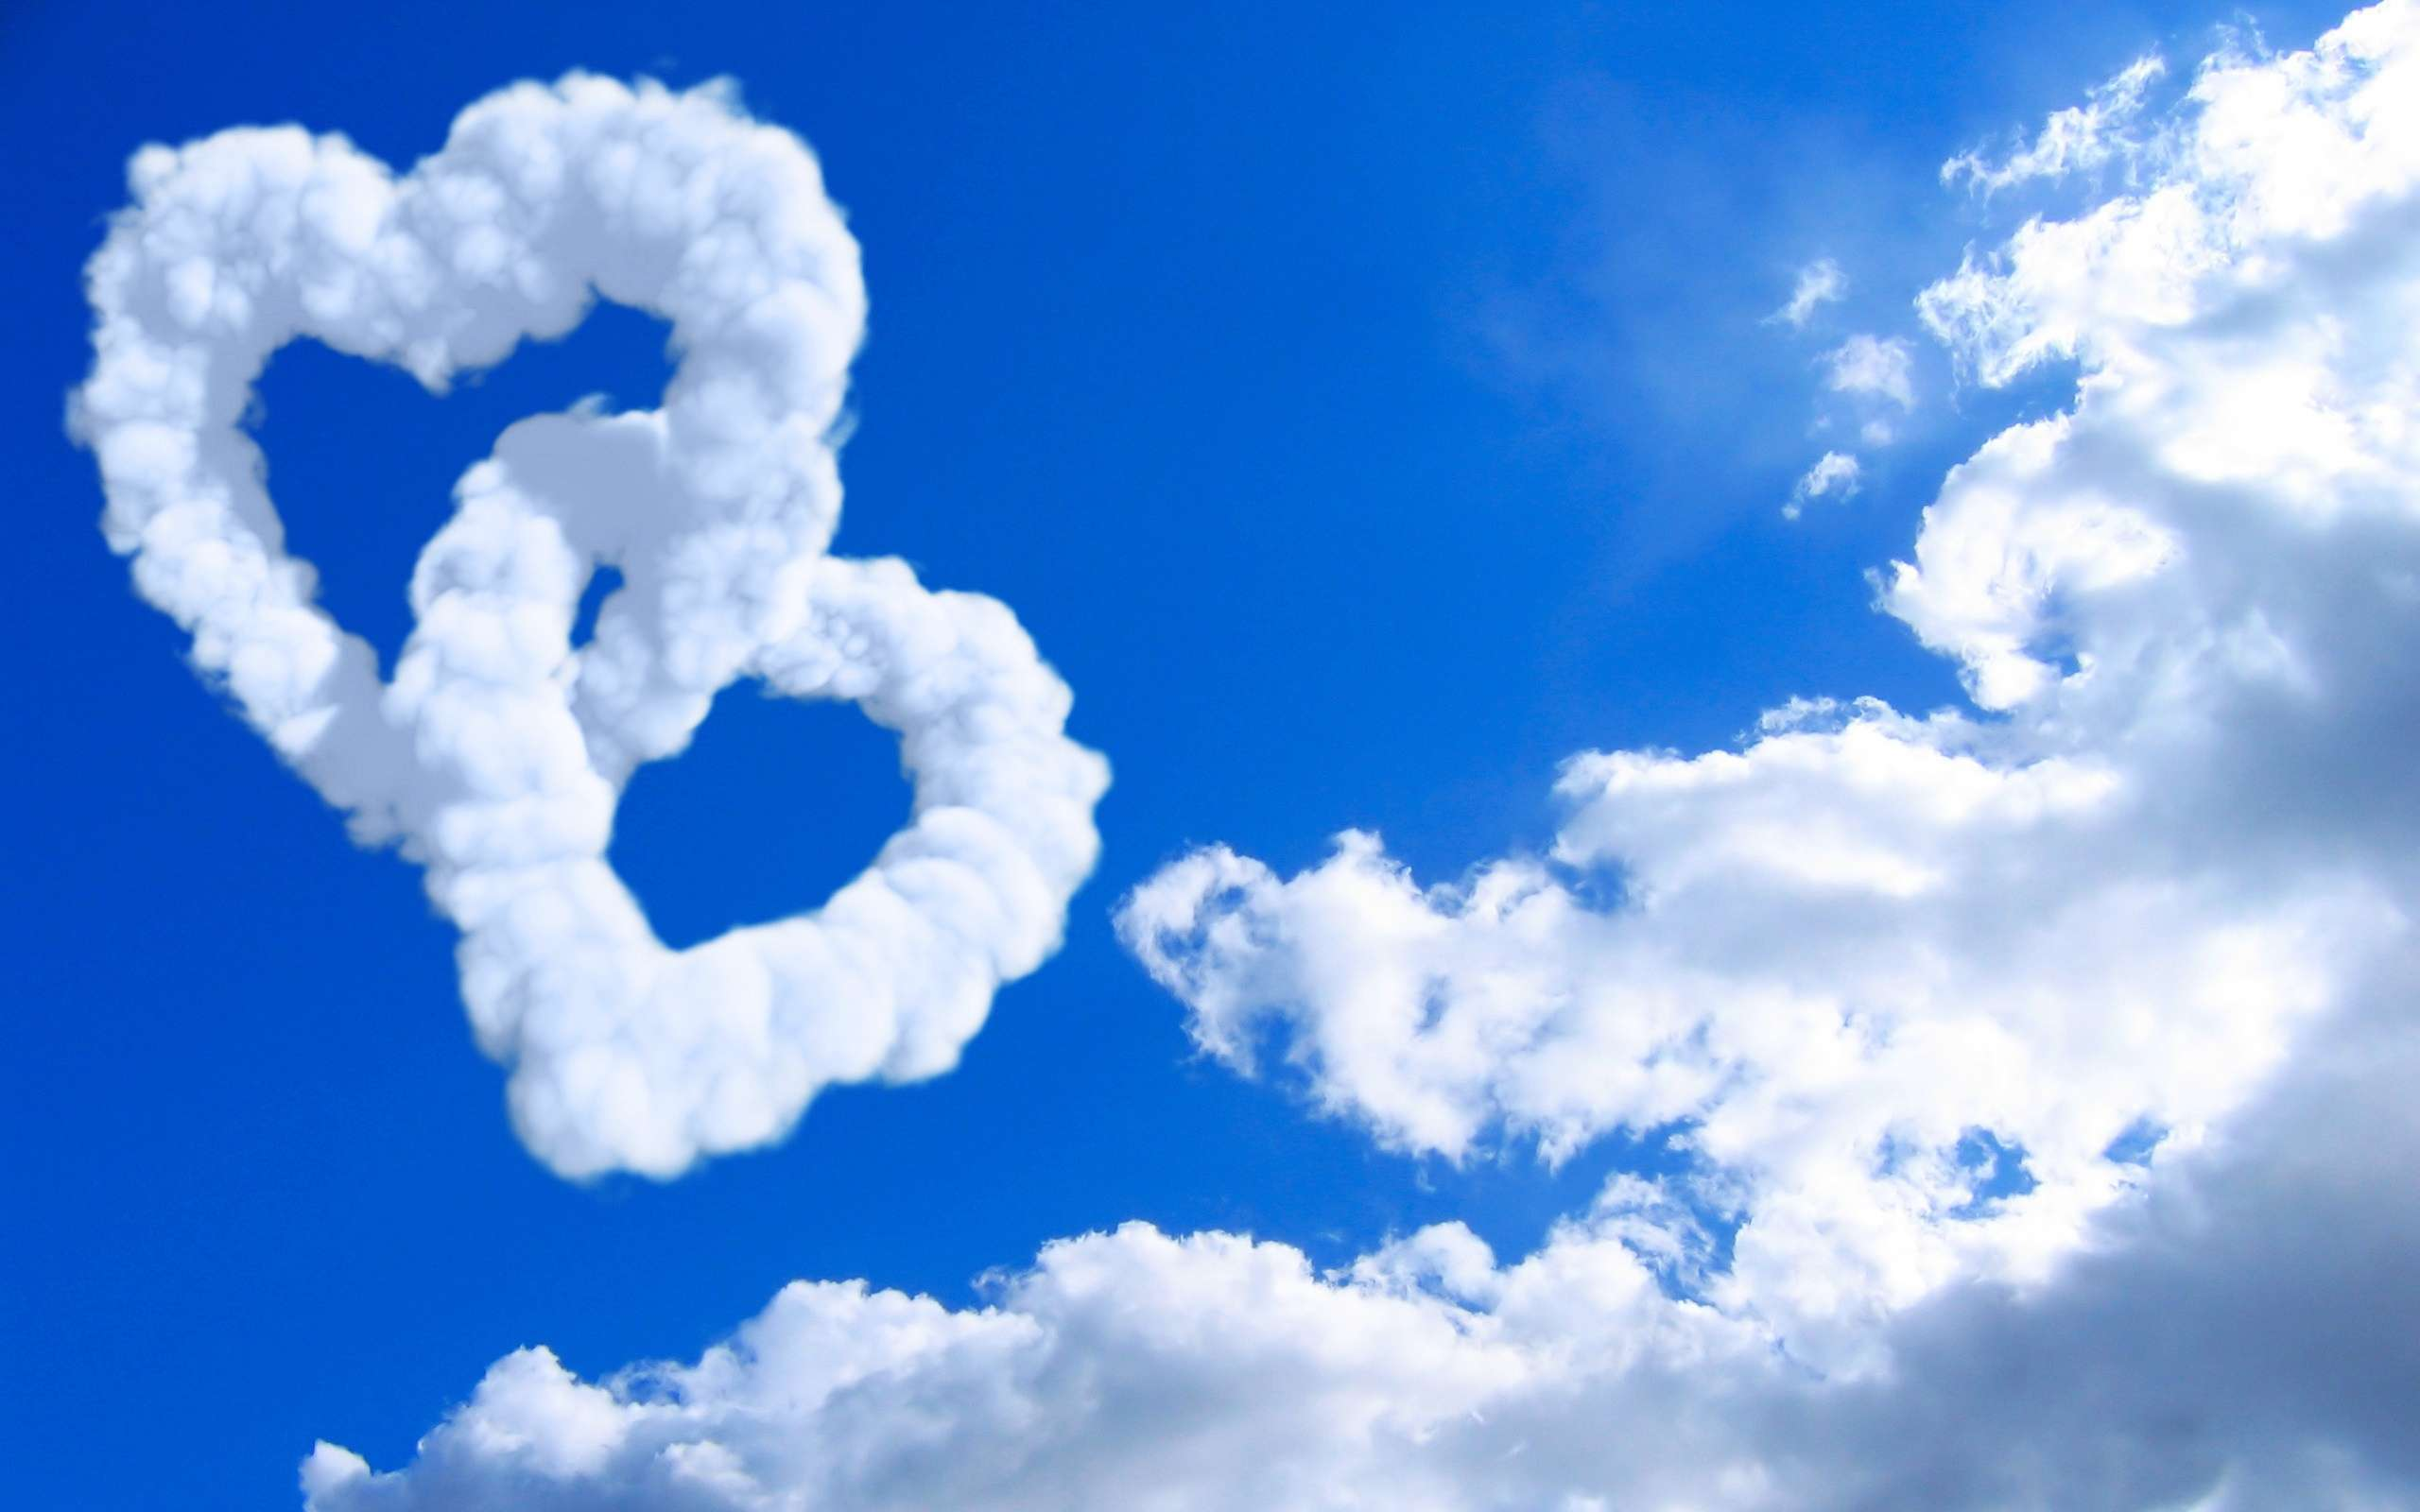 Awesome-Hearts-in-clouds-wallpaper-wp4603914